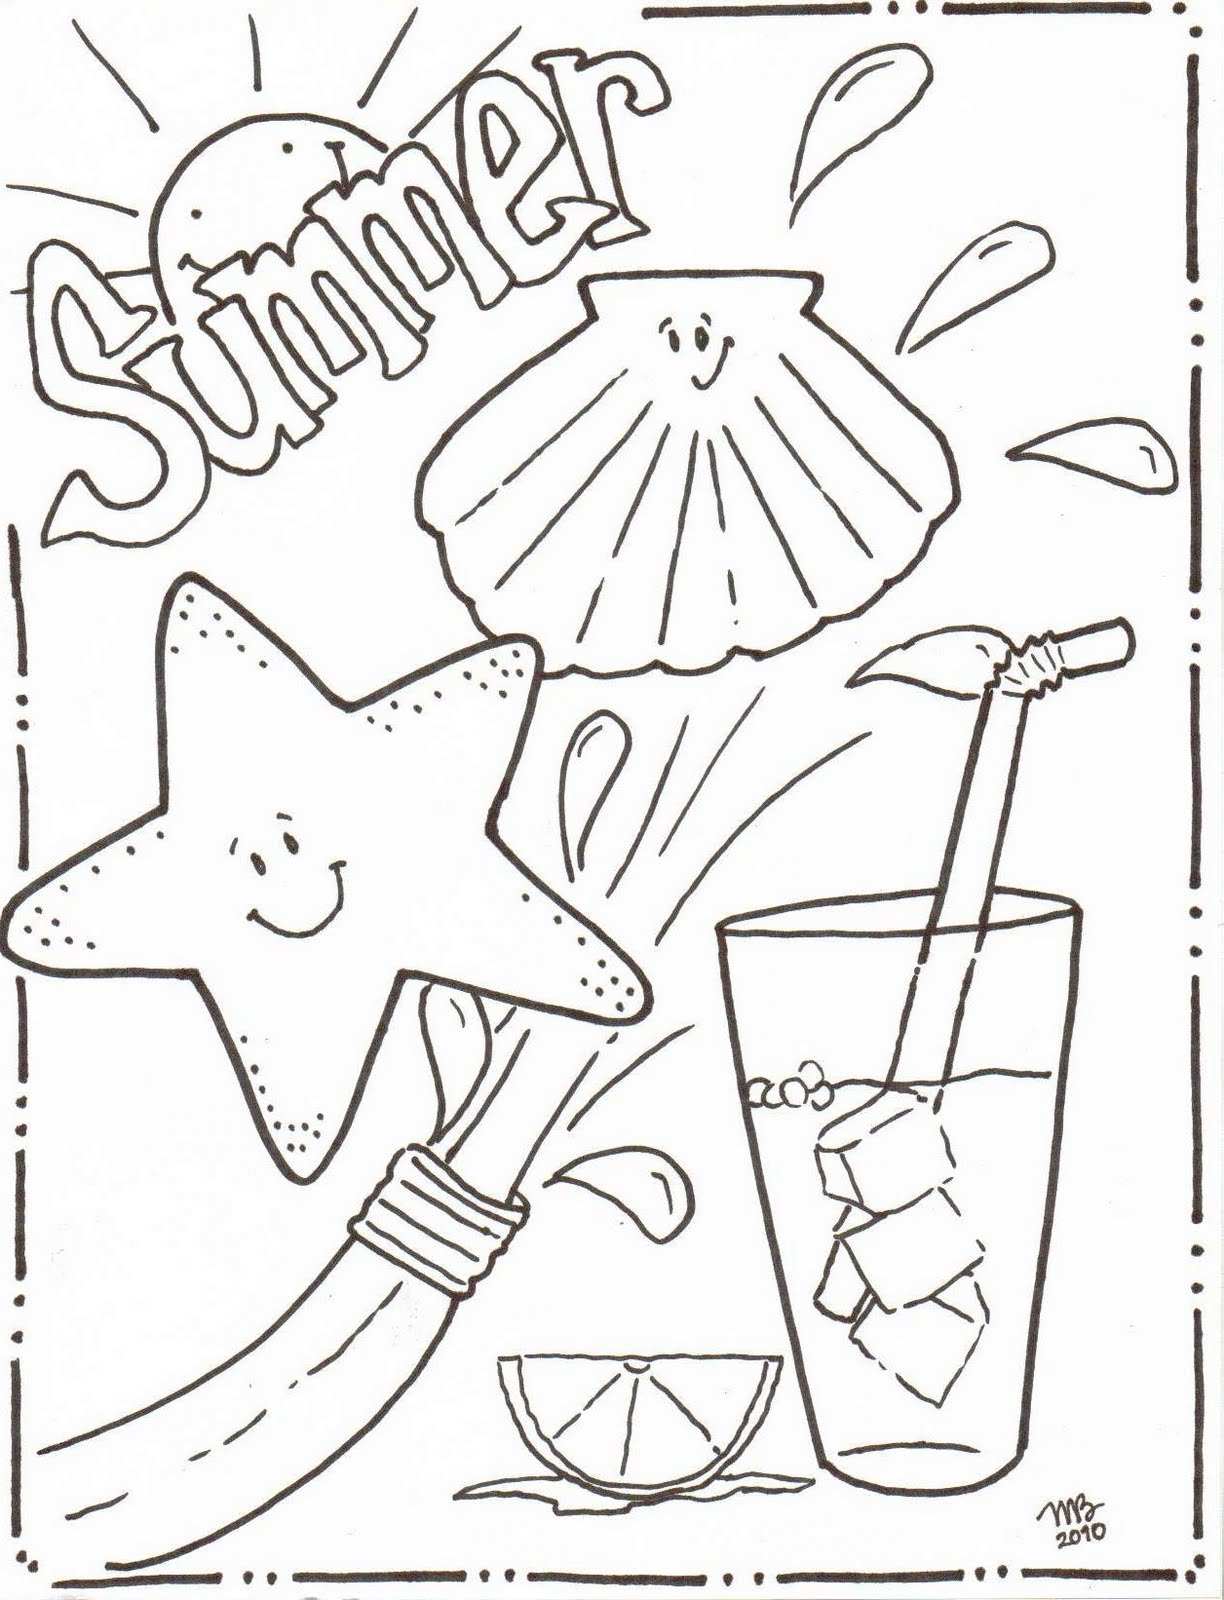 Free coloring pages for june - Free Coloring Pages For June 2